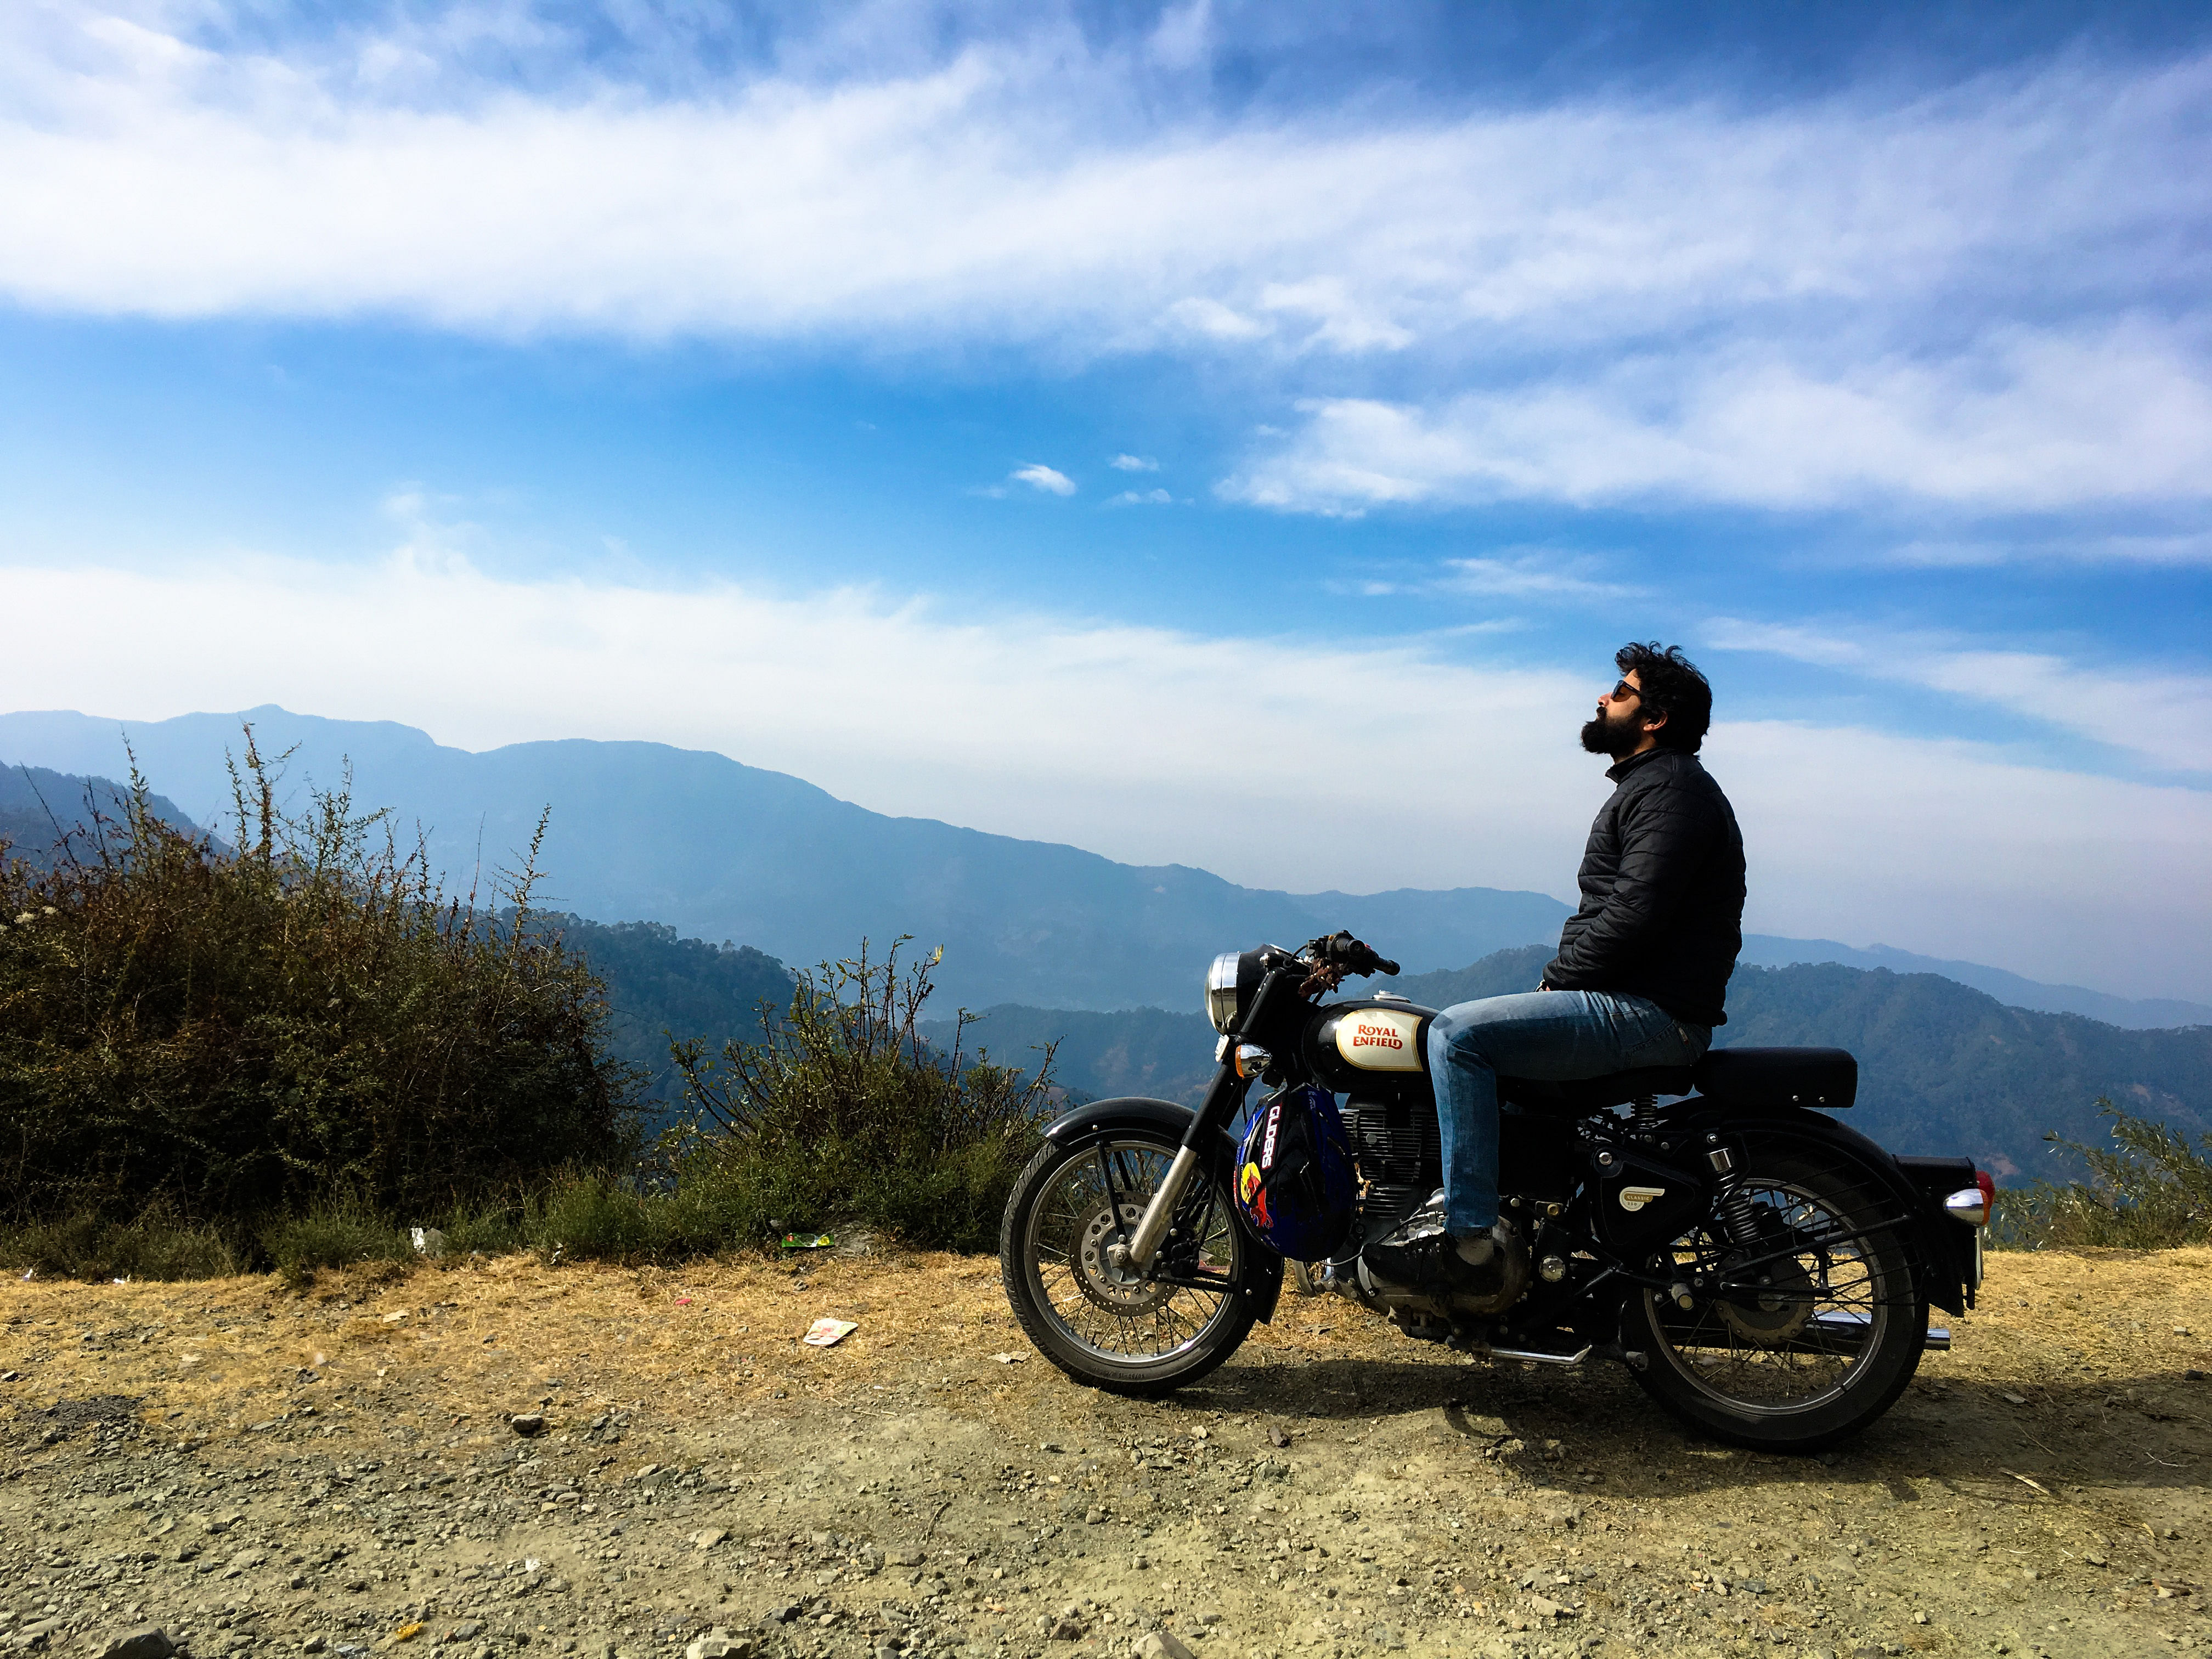 Journey to barot on bike<br>